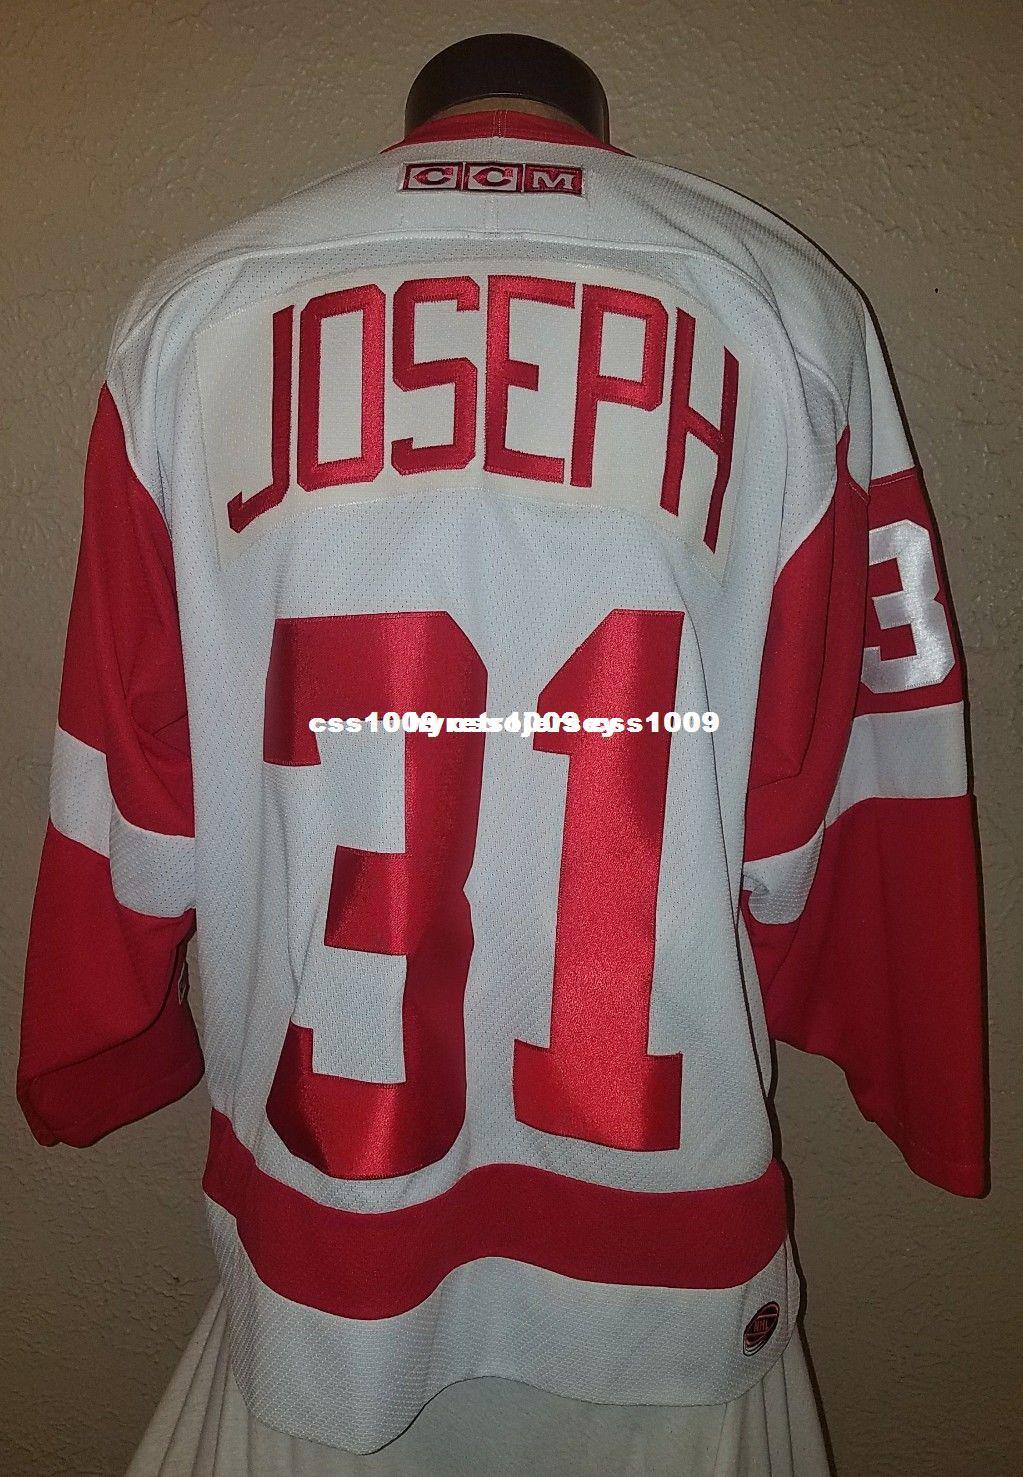 2019 Cheap Custom Detroit Red Wings  31 Curtis Joseph Hockey Jersey Mens  Personalized Stitching Jerseys From Hyretrojersey 69e80392345